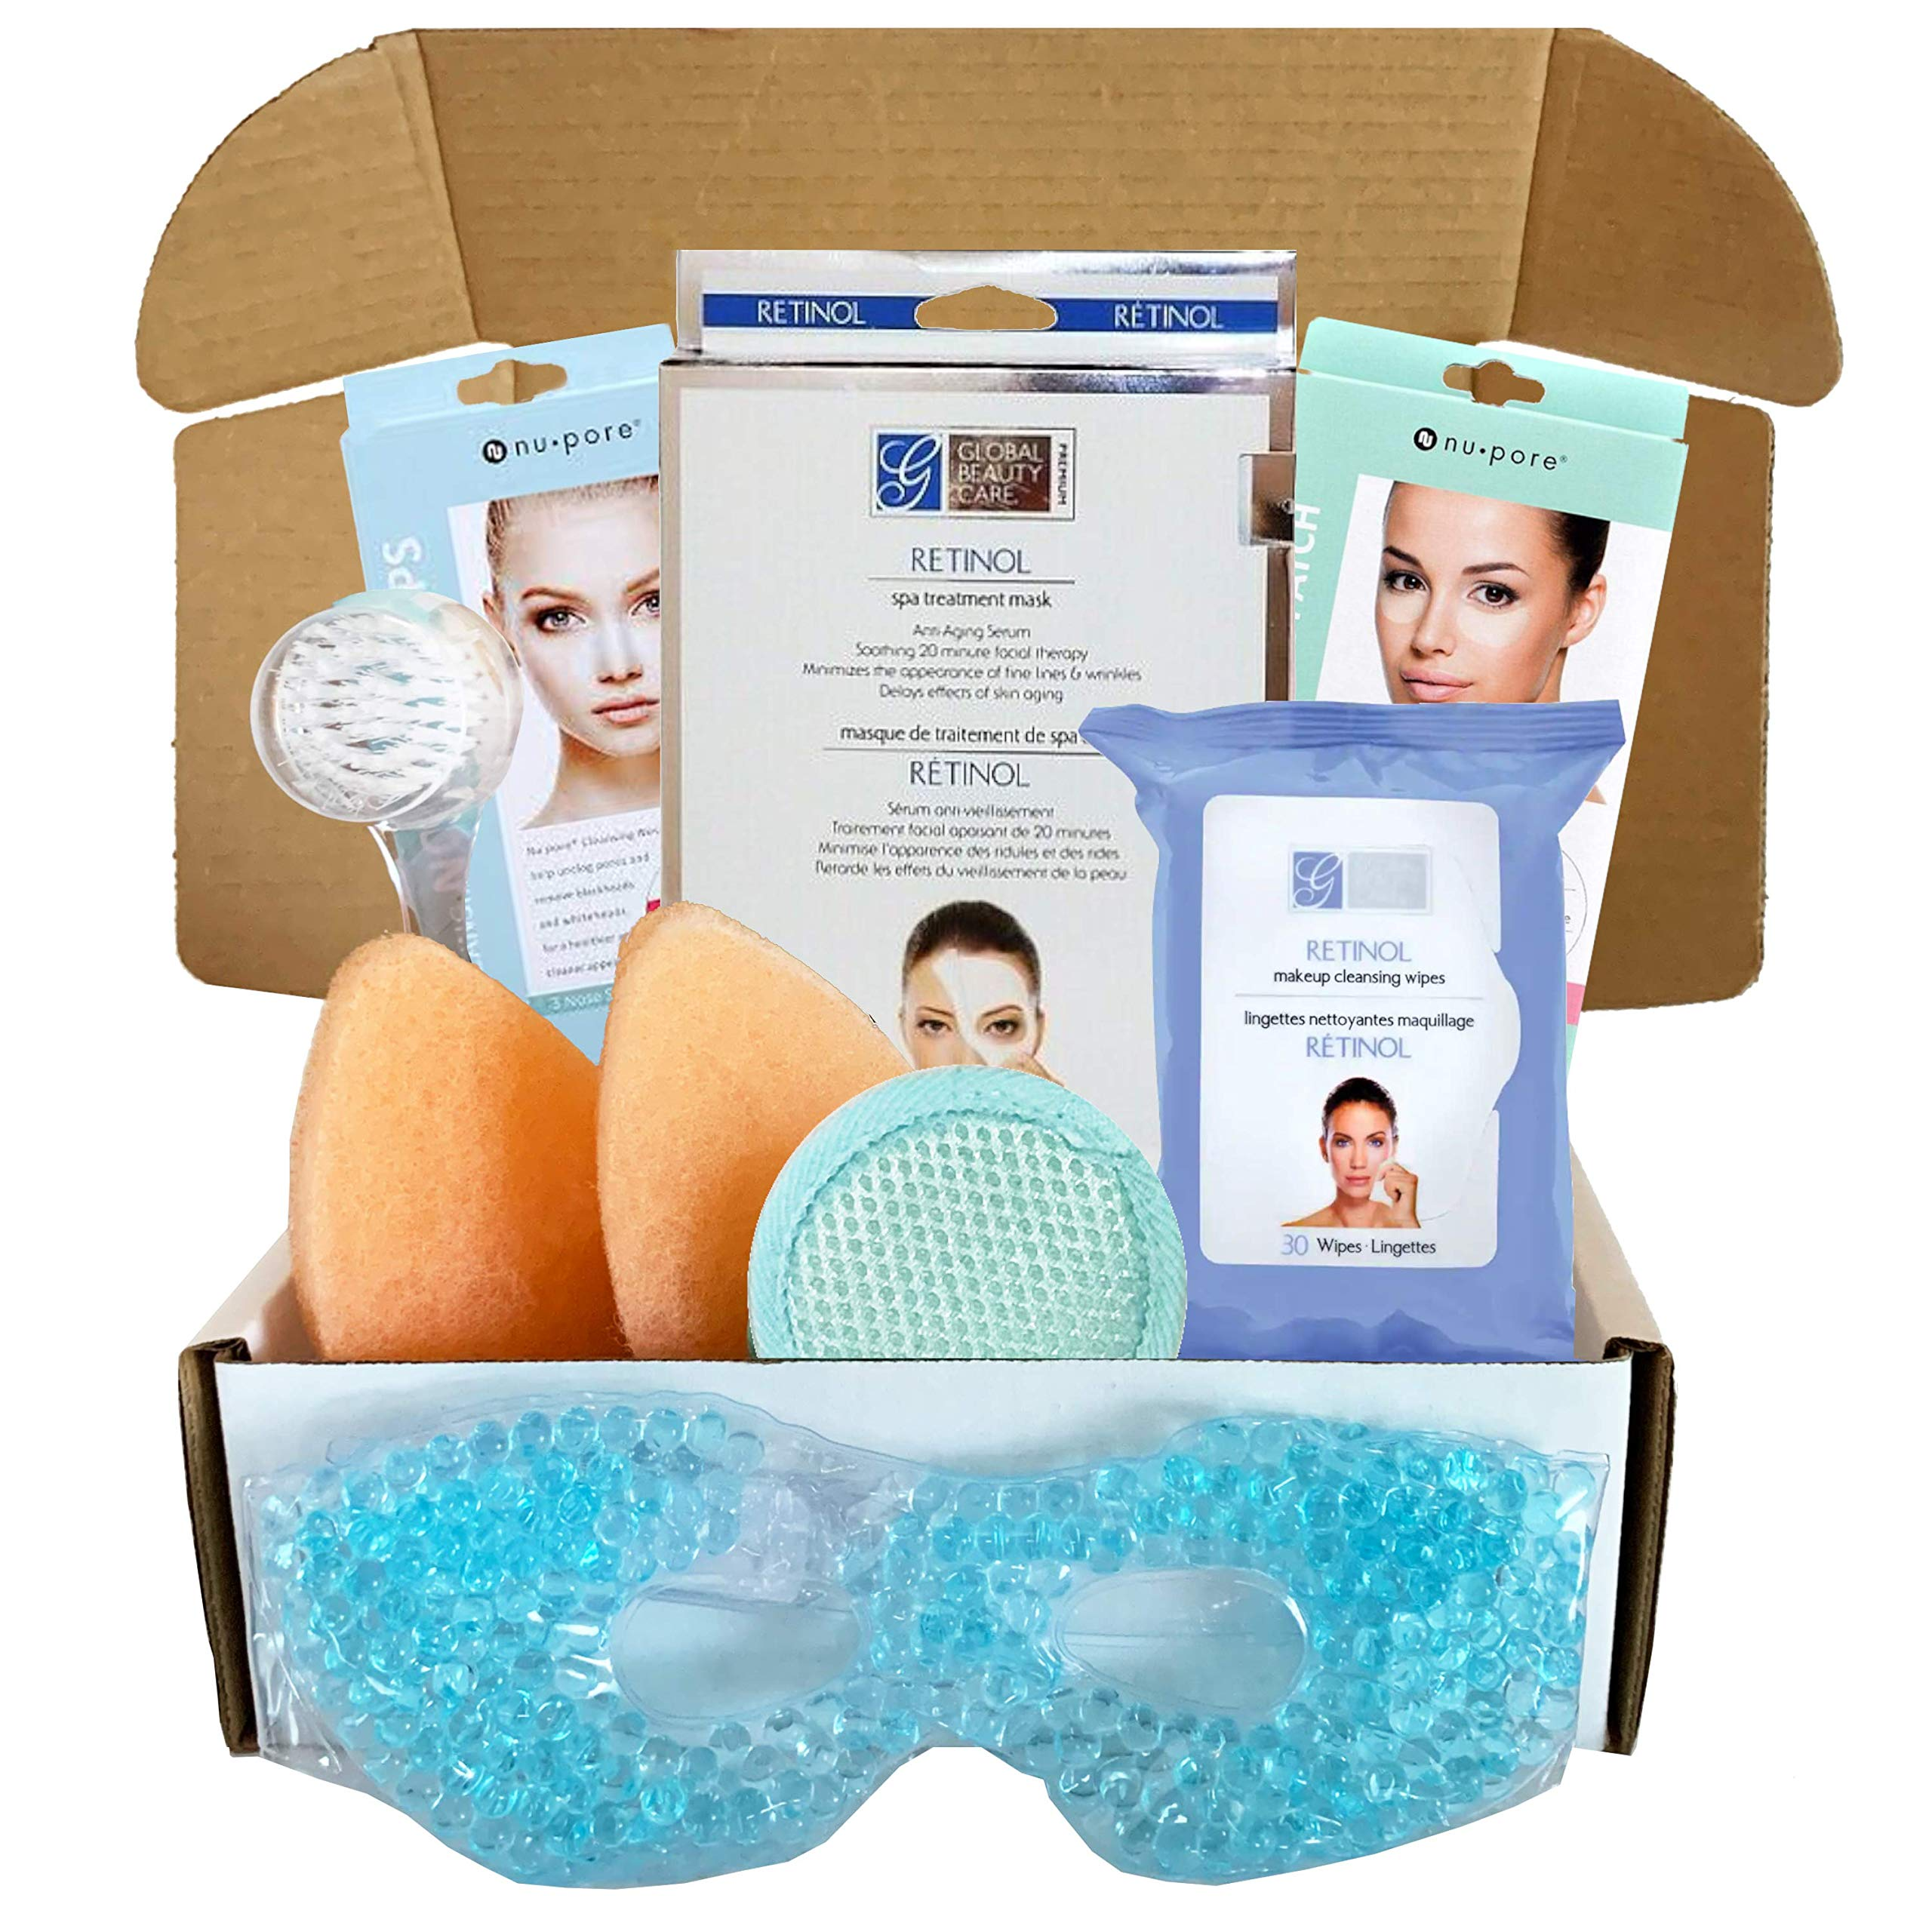 Facial Kit For Women - Includes Retinol Spa Treatment Sheet Mask, Makeup Cleansing Wipes, Nose Strips, Facial Cleansers, Facial Cleansing Brush, More - Facial Kit (Retinol Facial Kit)